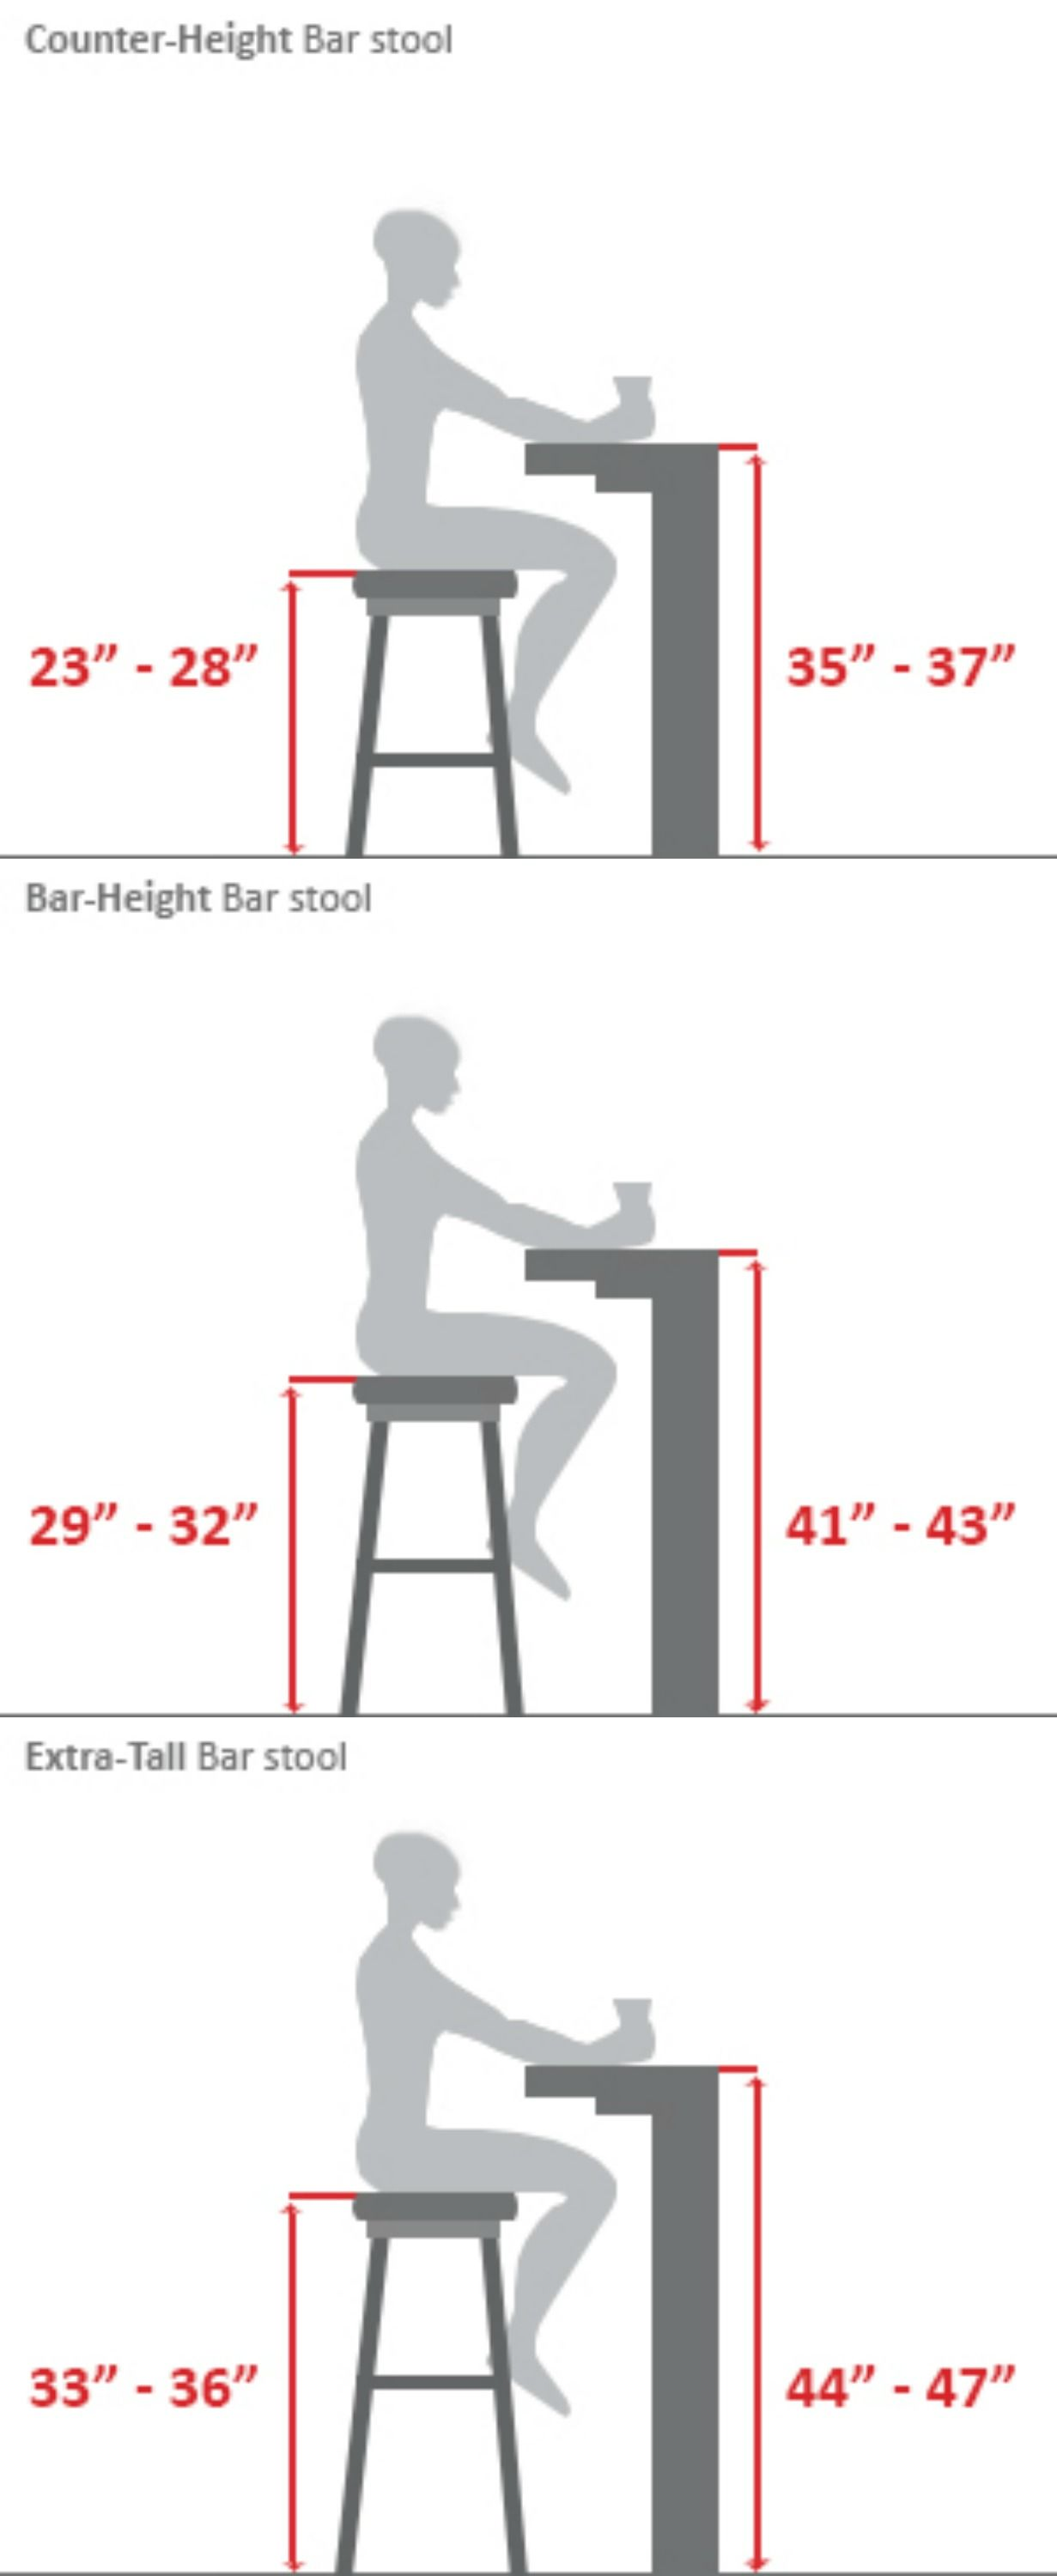 Bar Stool Guide Or The Builder S When Building Desks Tables Bars These Measurements Come In Handy